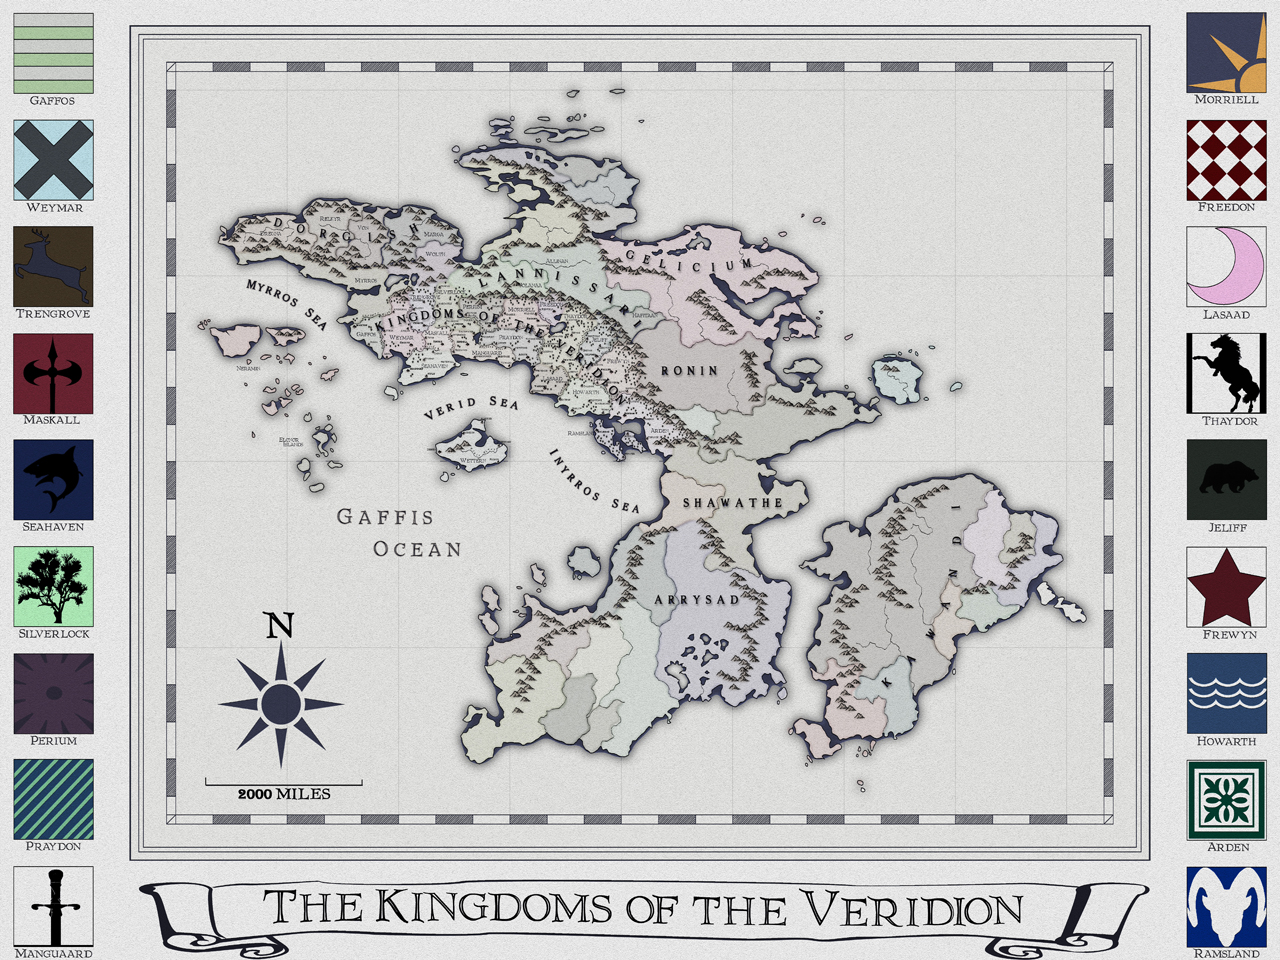 The Kingdoms of the Veridion